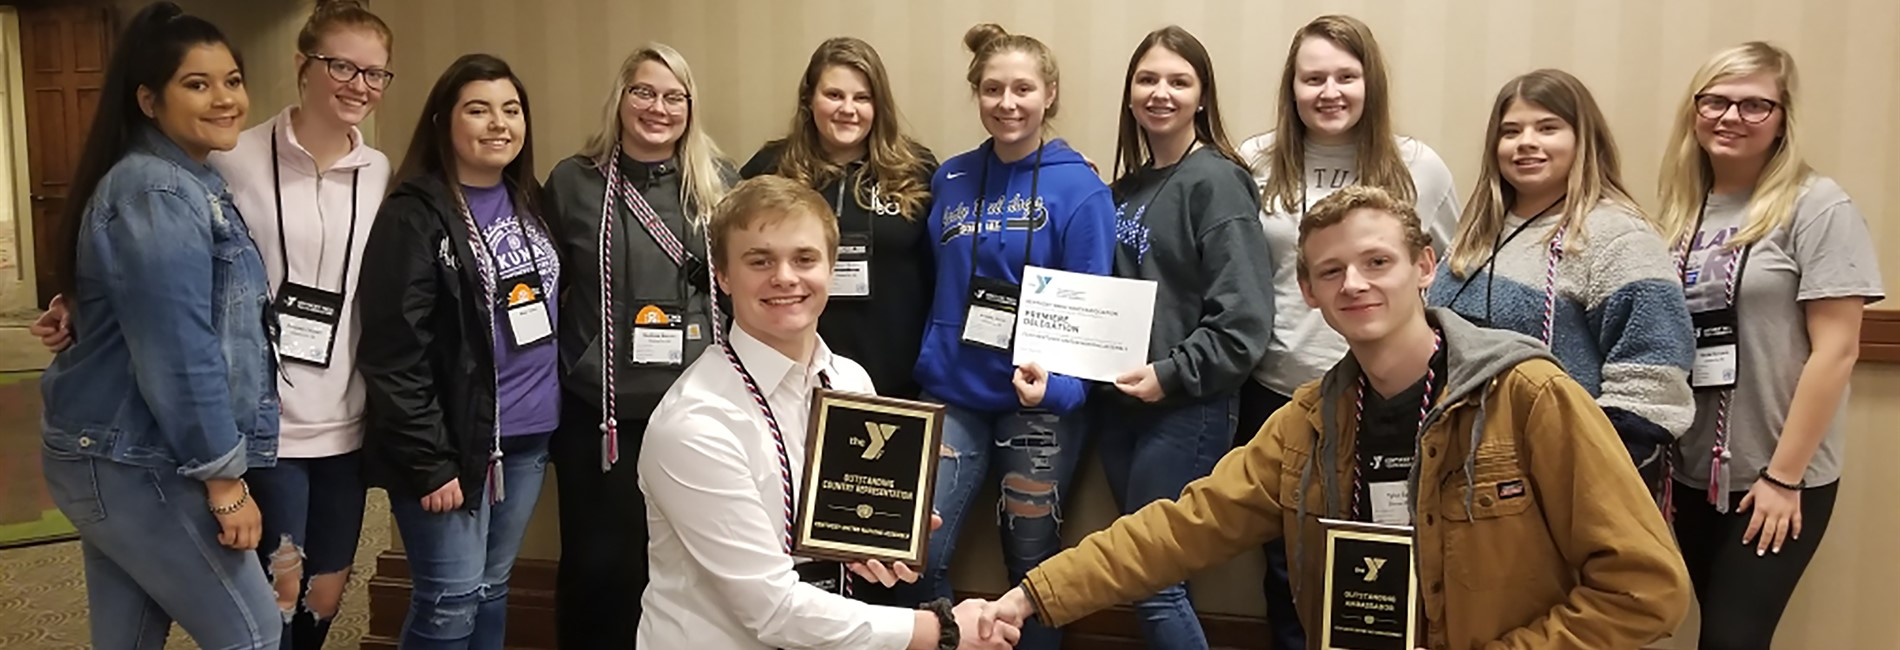 CCHS delegation receives Outstanding Country Representation at KUNA!